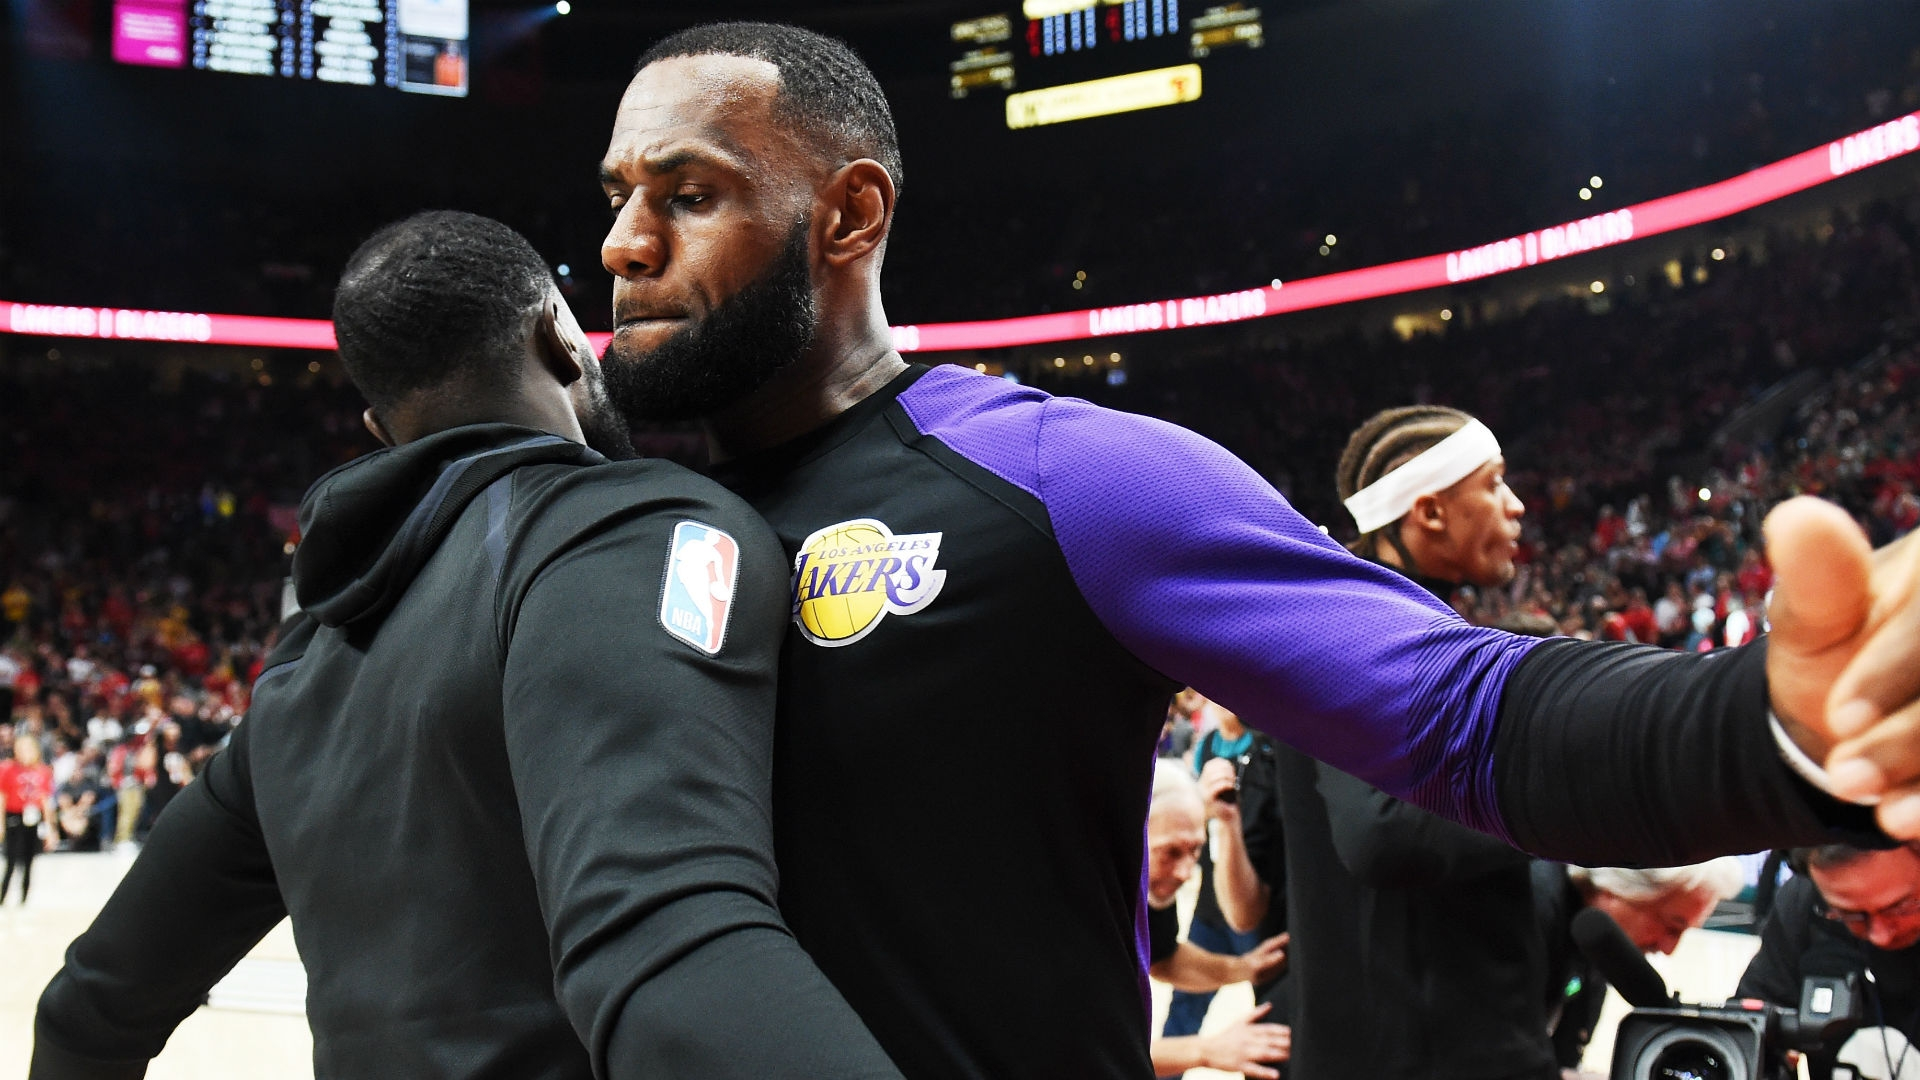 LeBron James has gone to Los Angeles for more than basketball